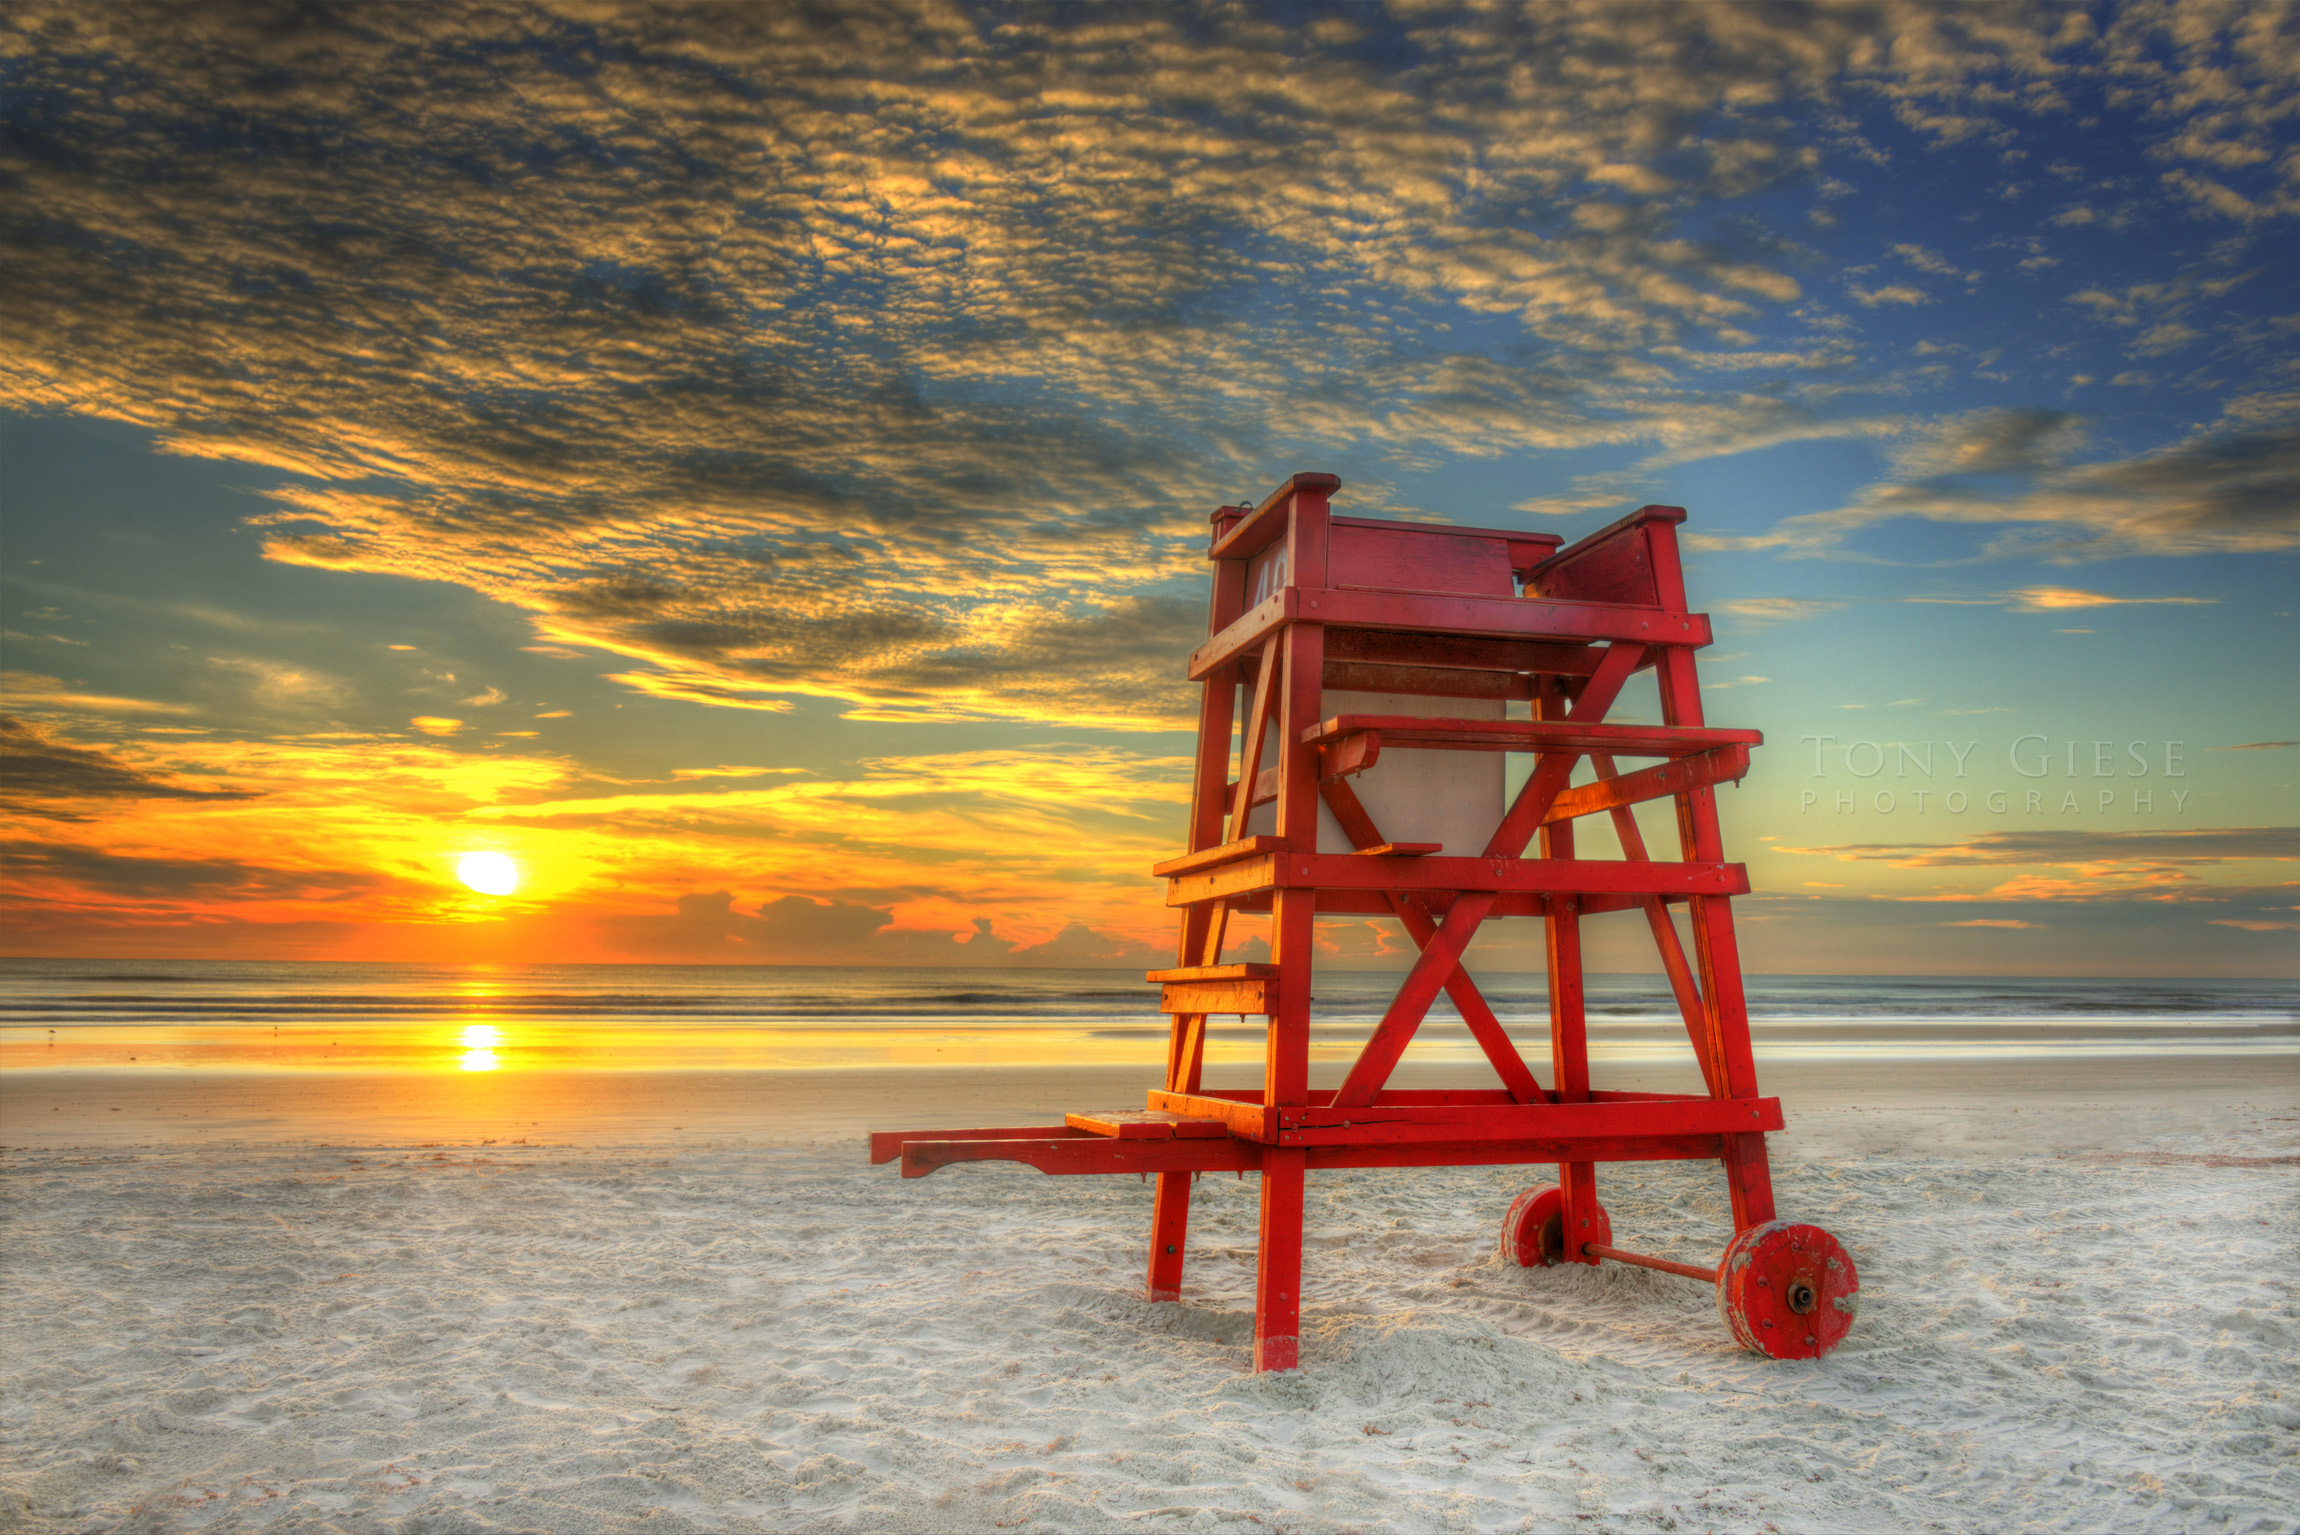 new smyrna beach chat Things to do in new smyrna beach, florida: see tripadvisor's 10,914 traveler reviews and photos of new smyrna beach tourist attractions find what to do today, this weekend, or in may.